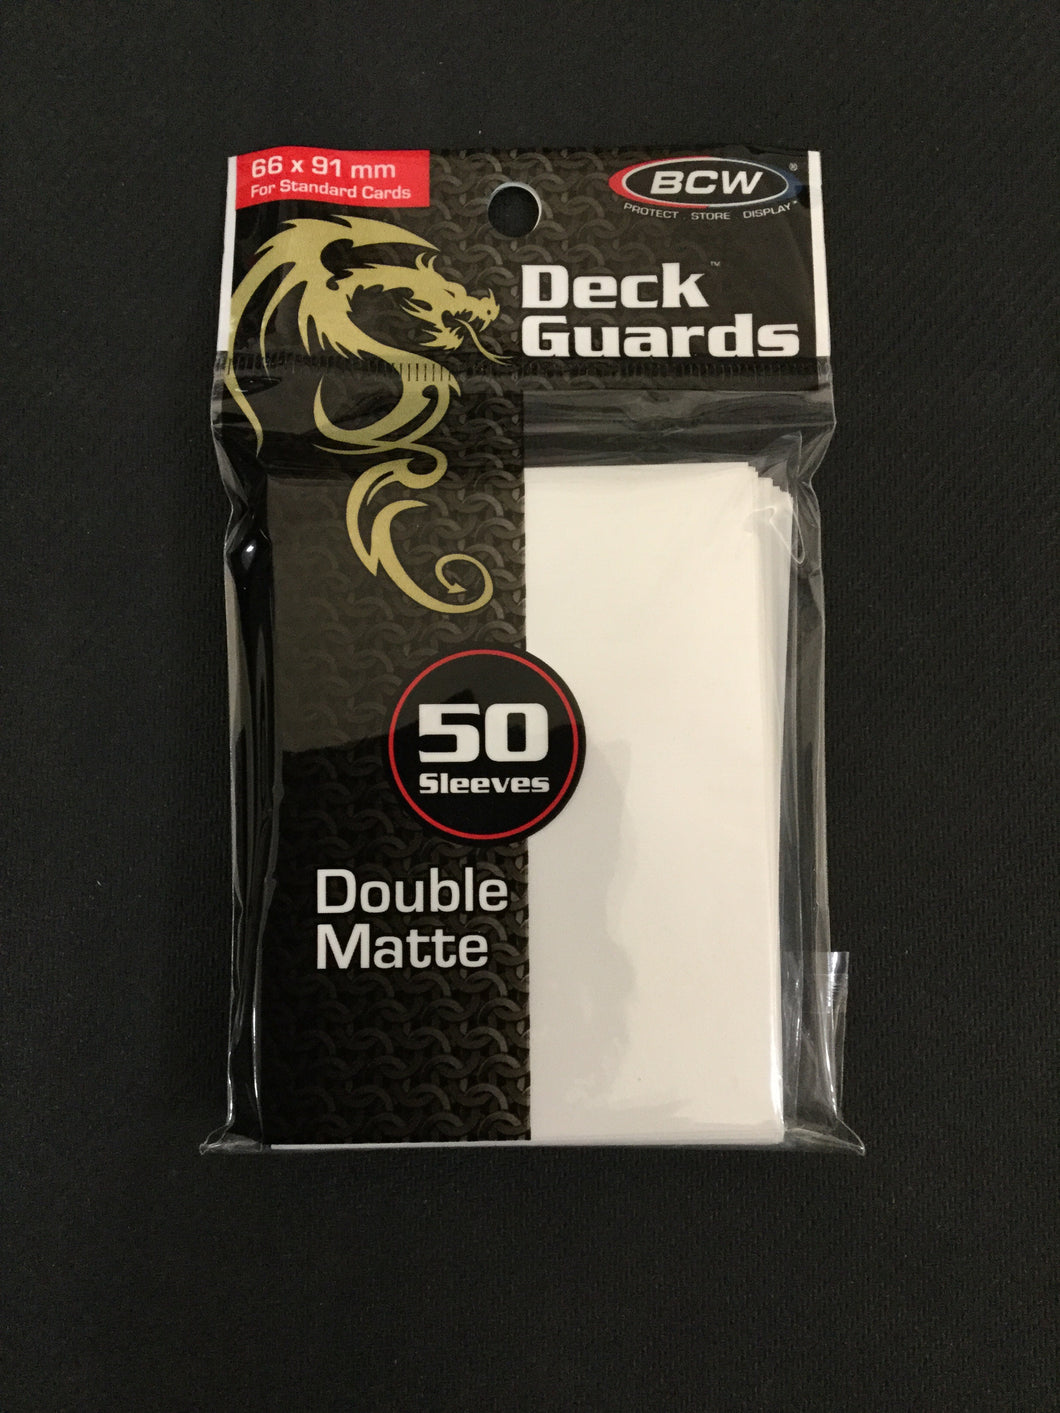 BCW White Deck Guards